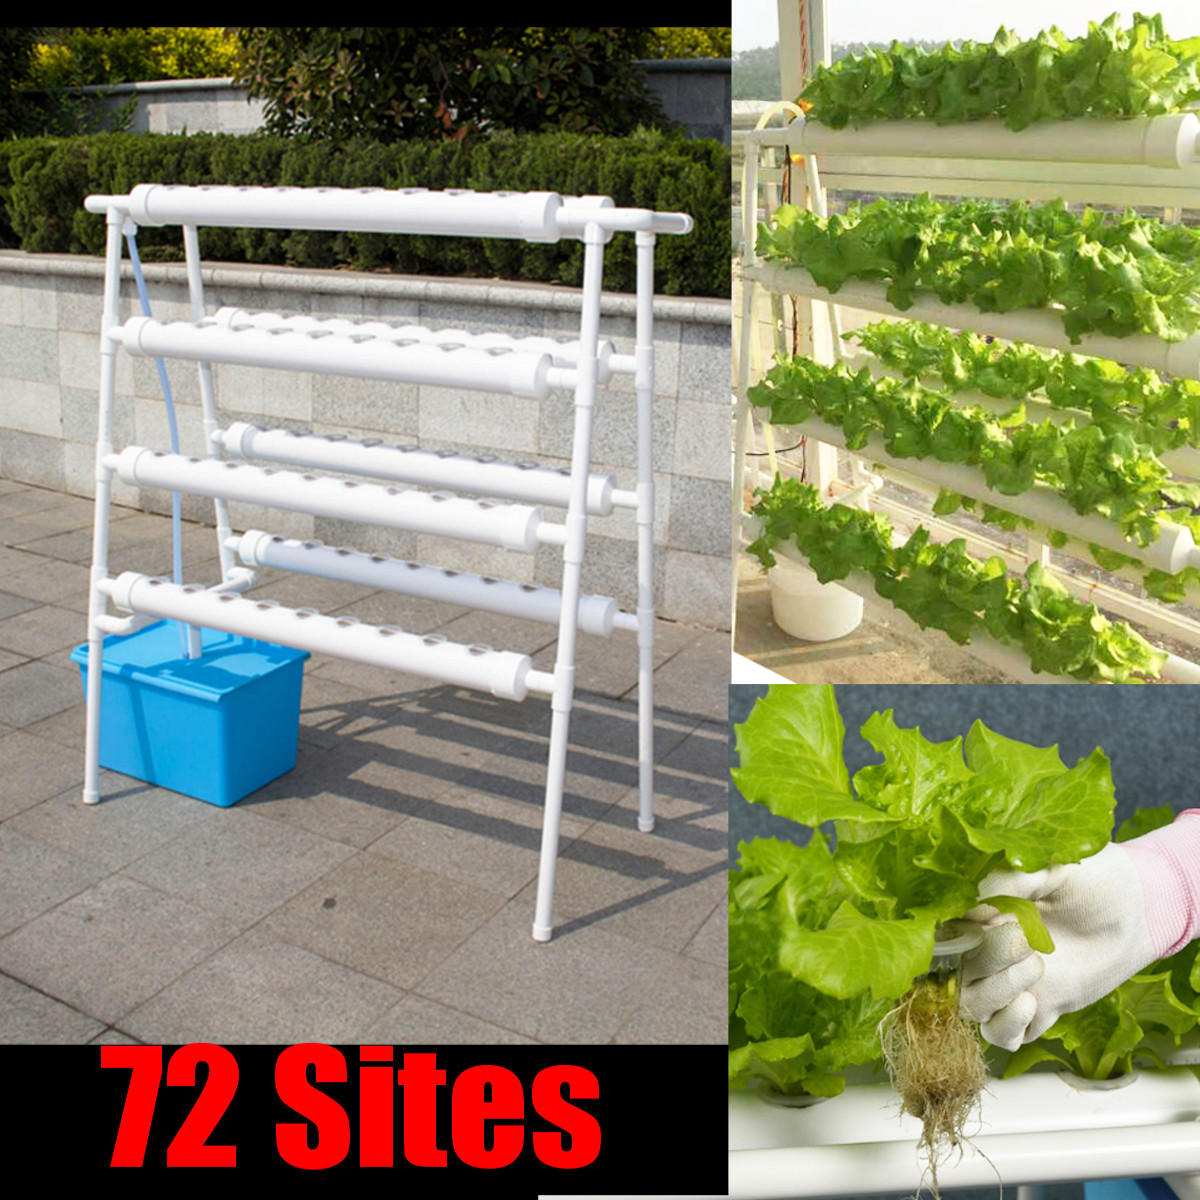 Beautiful Image Is Loading 72 Sites Hydroponic Site Grow Kit Ladder Type